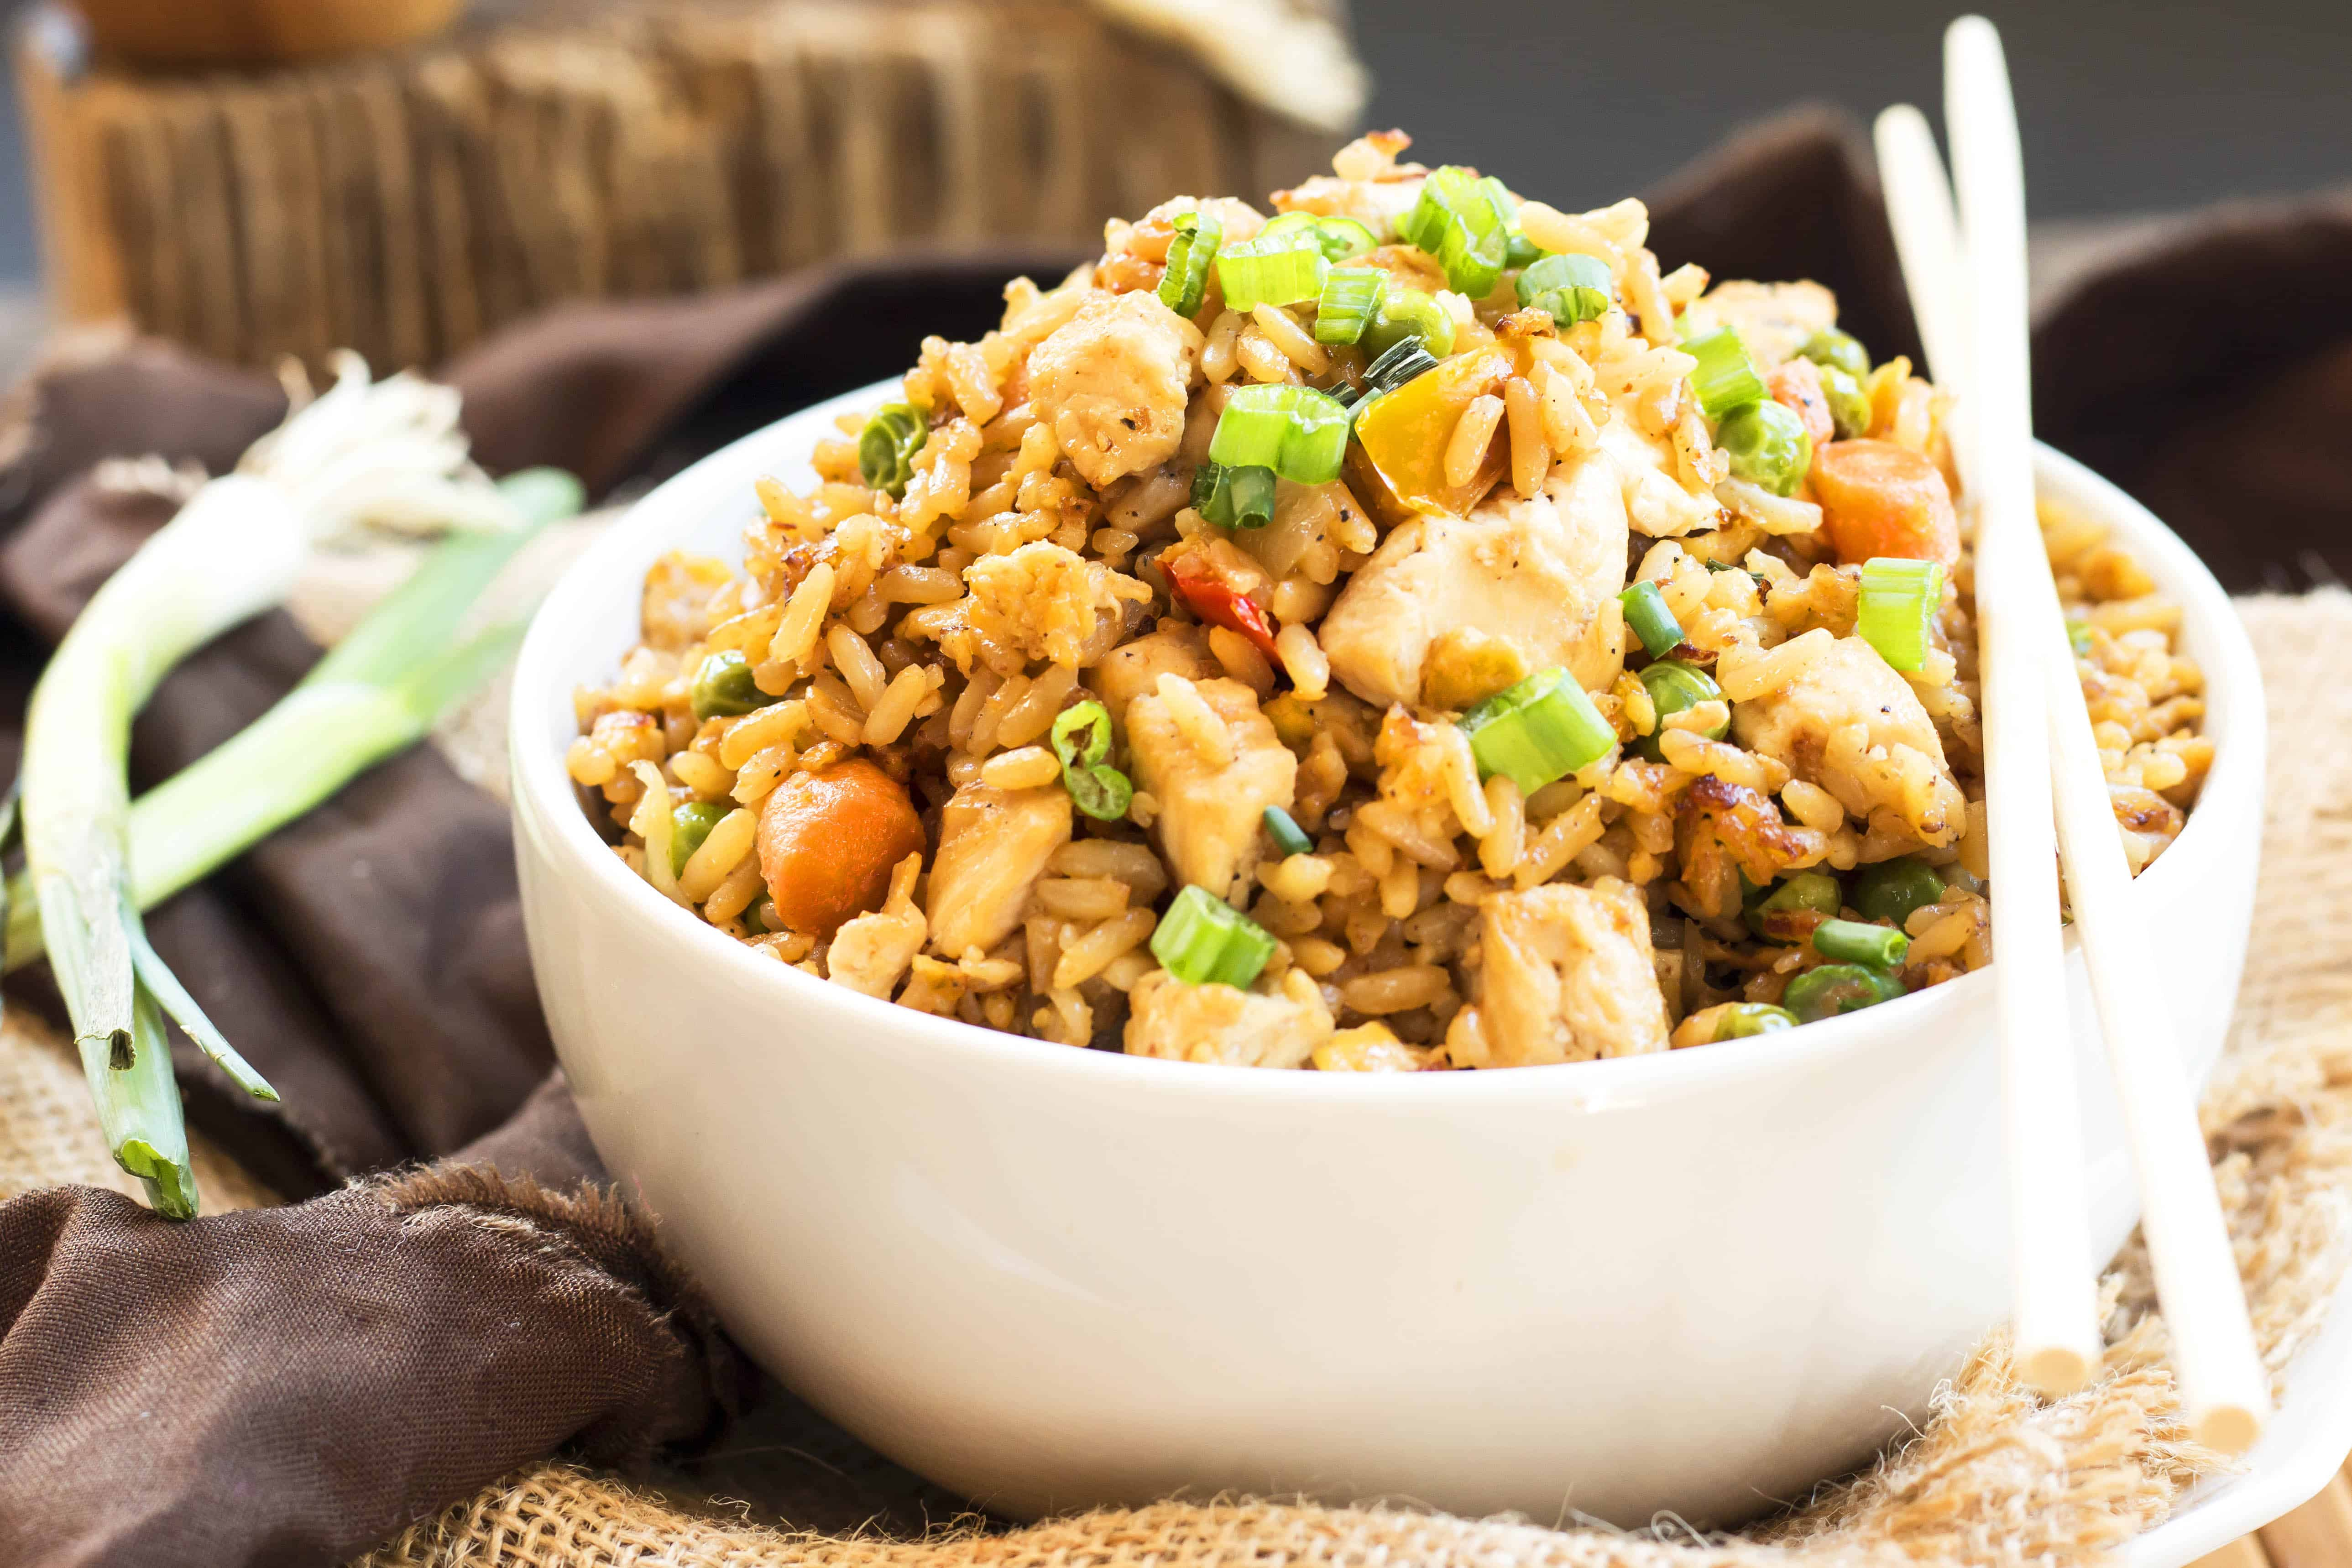 Gluten free chicken fried rice simple easy fried rice recipe chicken fried rice a gluten free chicken fried rice recipe ccuart Gallery